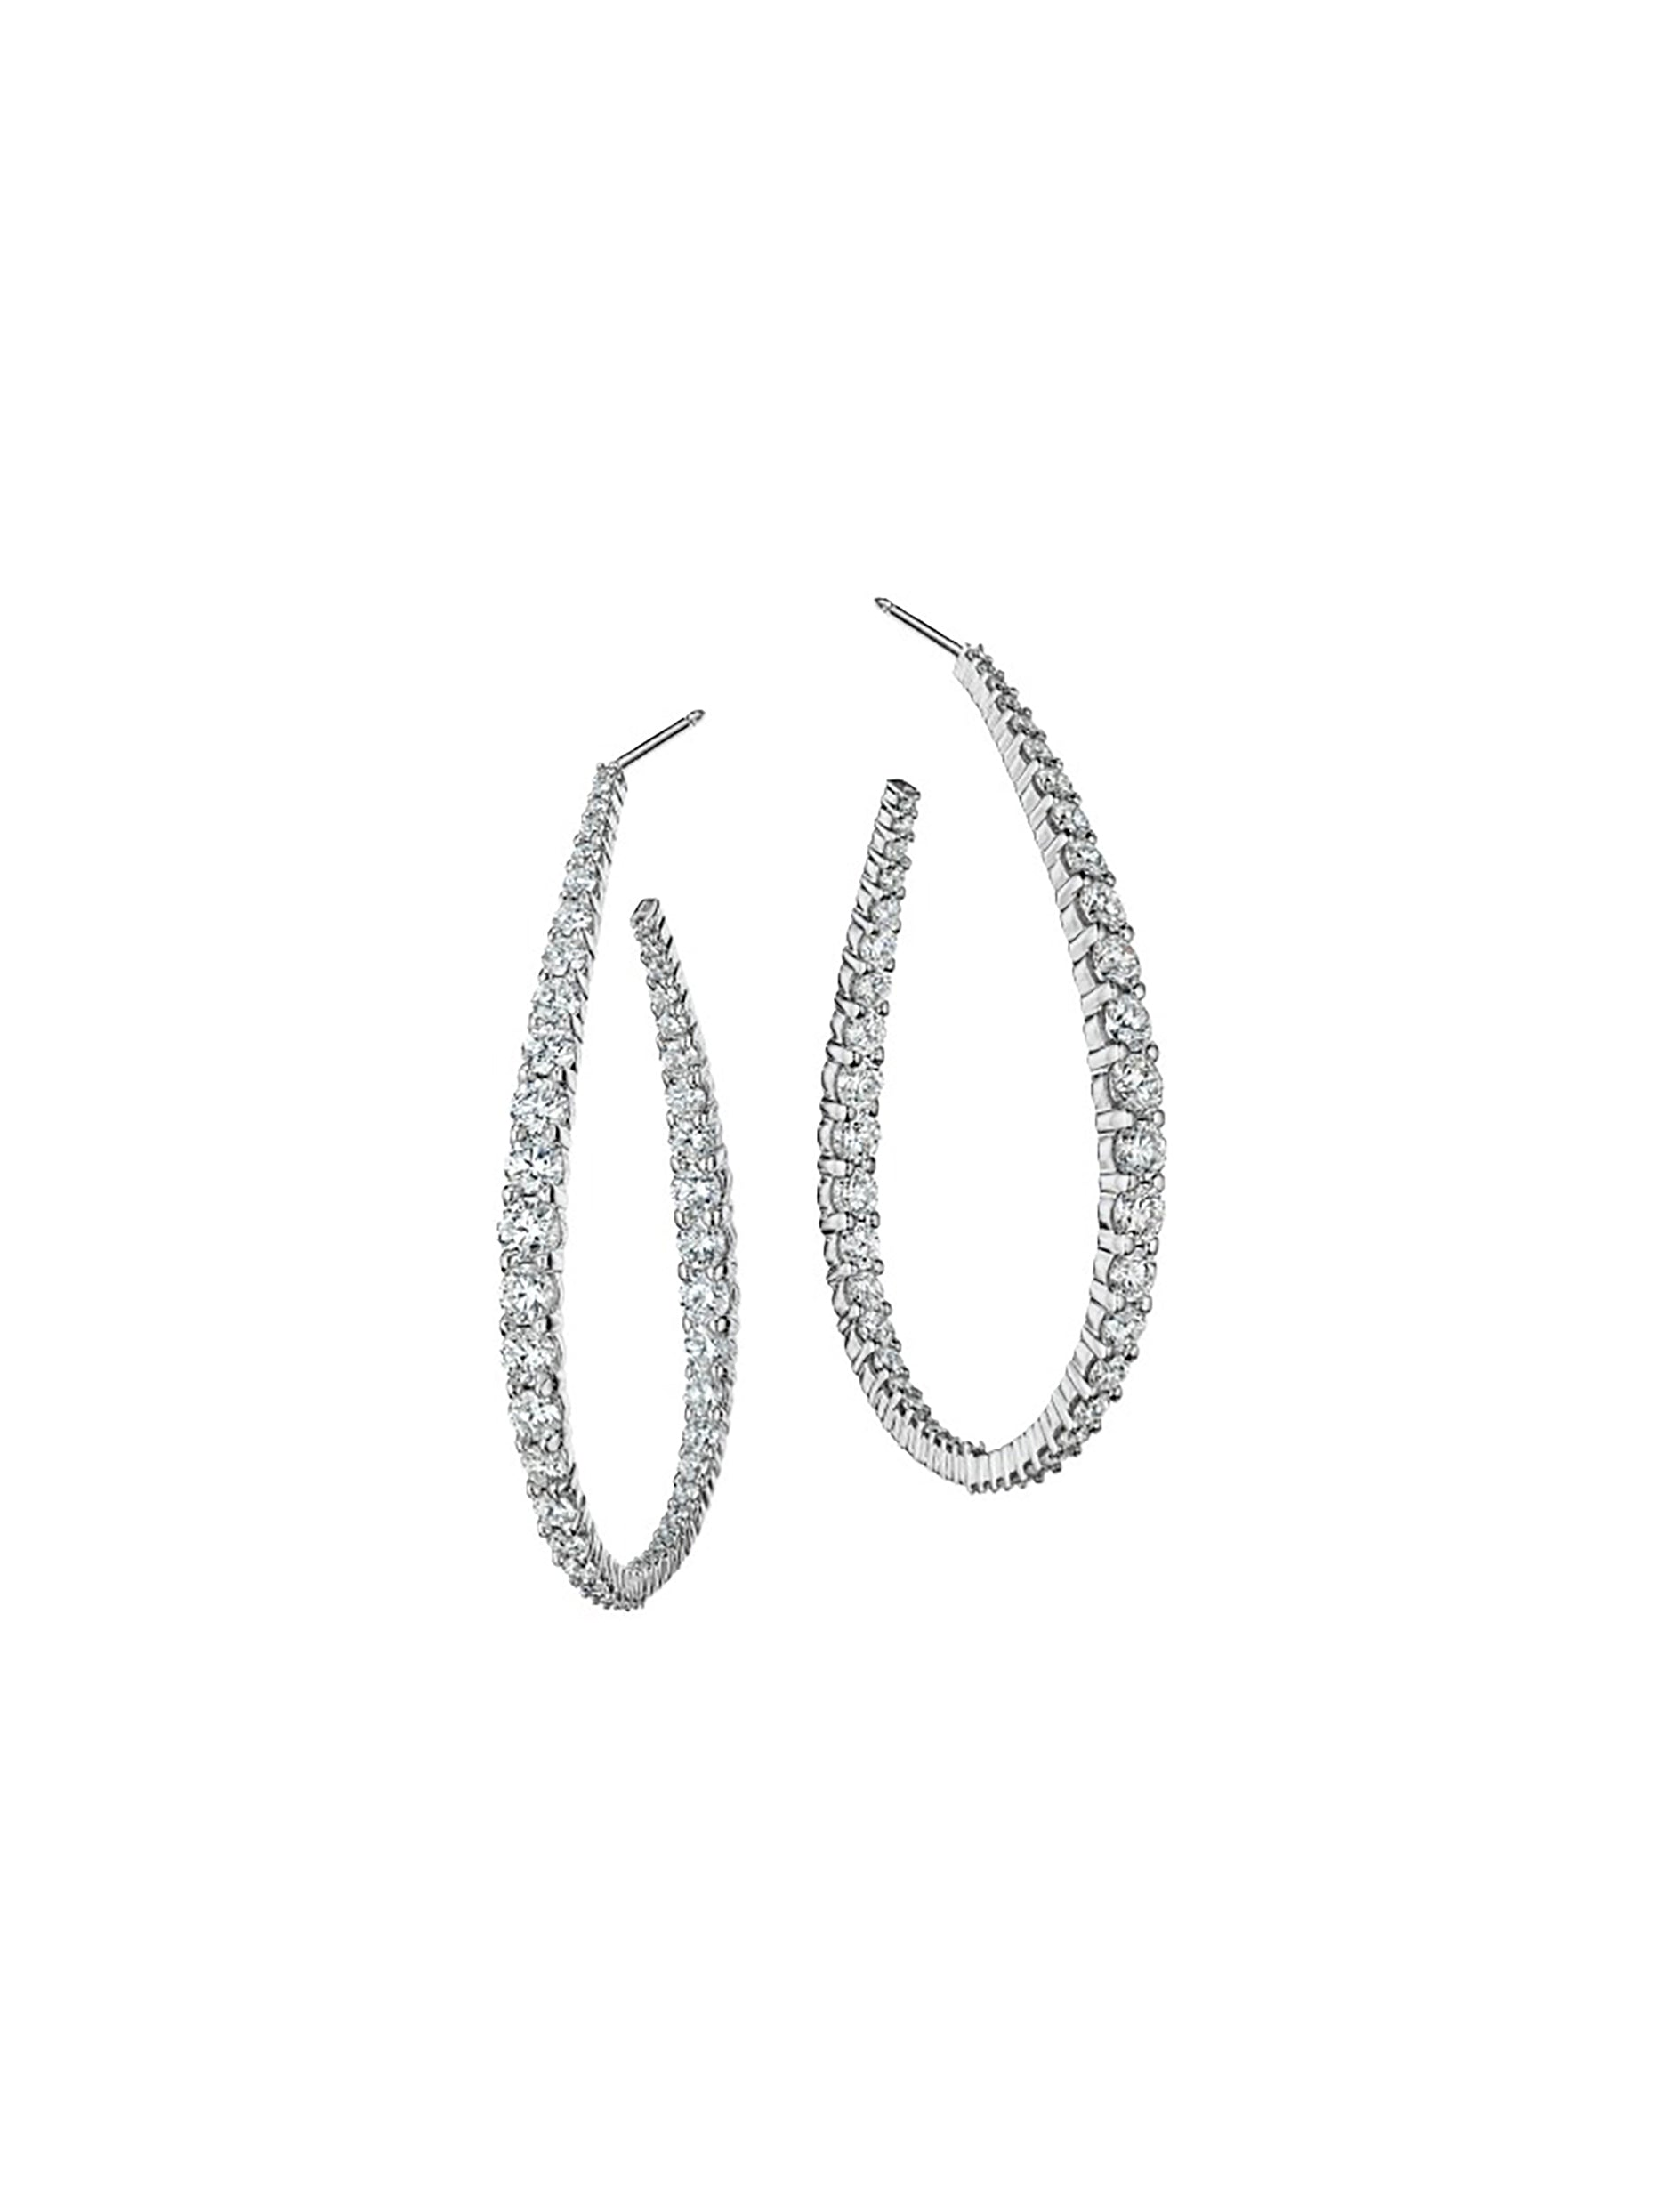 Graduated Water Drop Shaped Diamond Hoops 2""